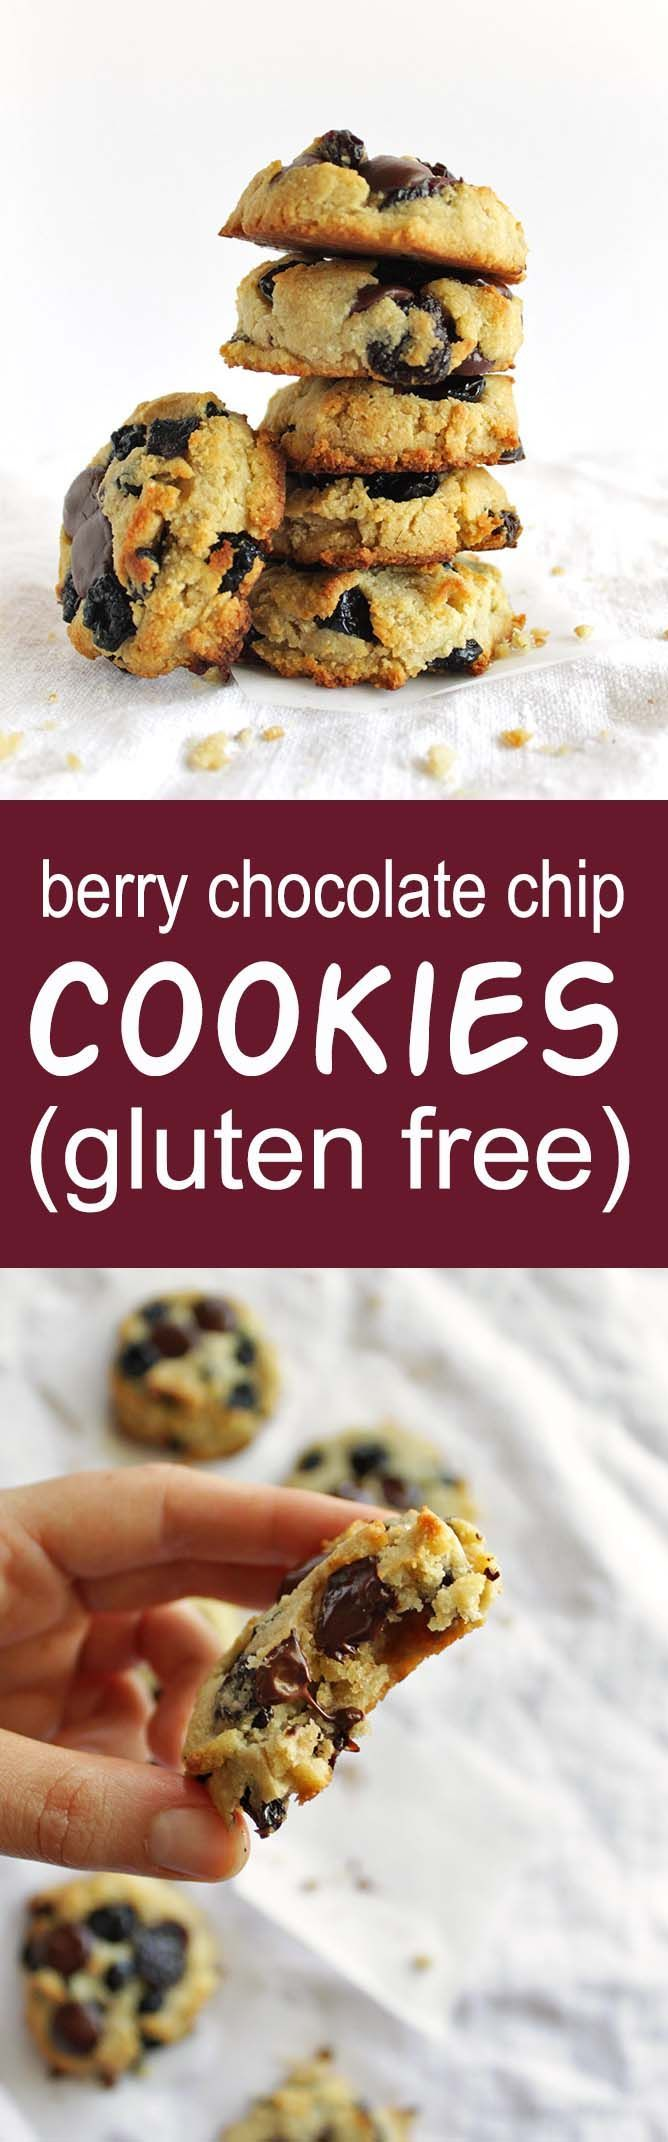 Berry Chocolate Chip  Berry Chocolate Chip Cookies (Gluten Free) - Soft cookies that are studded with tart dried cherries, sweet dried blueberries, and rich dark chocolate chips. Plus this recipe only requires one bowl! So YUM! |  robustrecipes.com  https://www.pinterest.com/pin/279082508141408799/